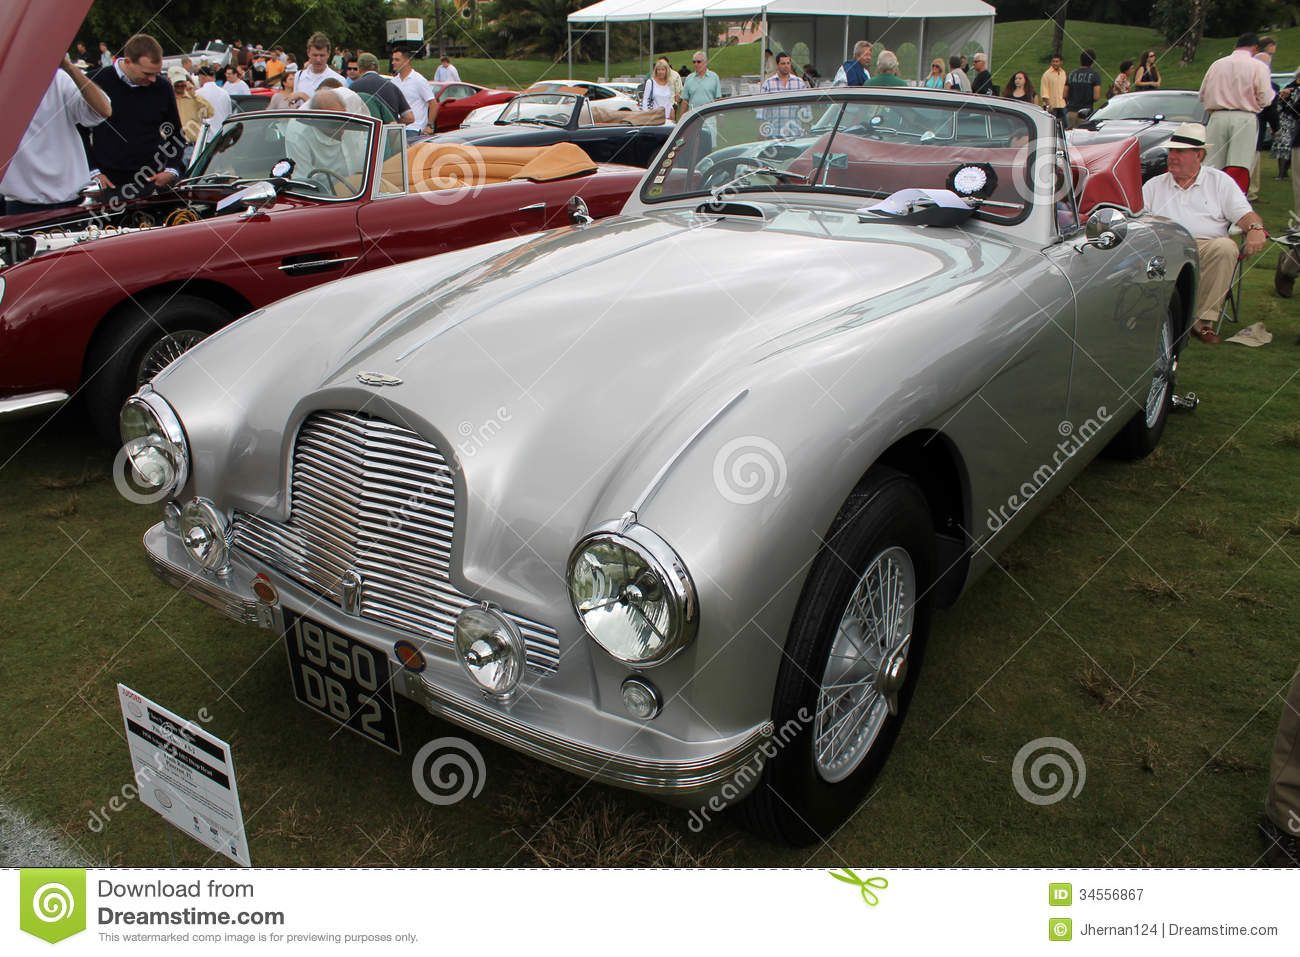 1 063 Classic Aston Martin Photos Free Royalty Free Stock Photos From Dreamstime